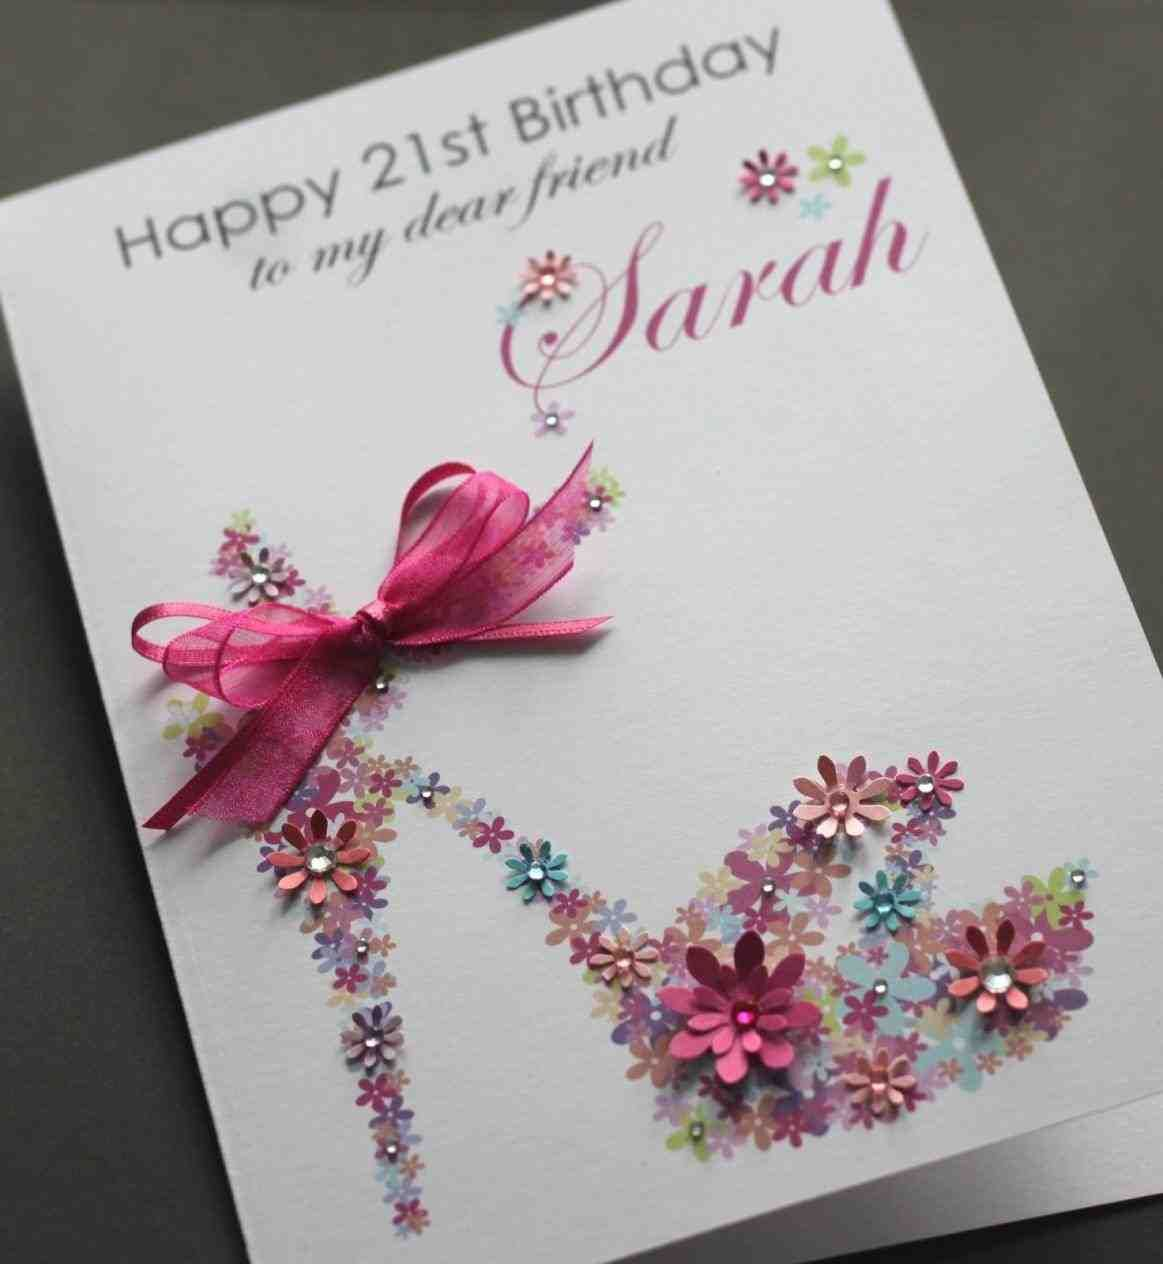 Birthday greeting cards for him to get ideas how to make your own birthday greeting cards for him to get ideas how to make your own birthday card design 6 birthday greeting cards for father in law combined with your kristyandbryce Images